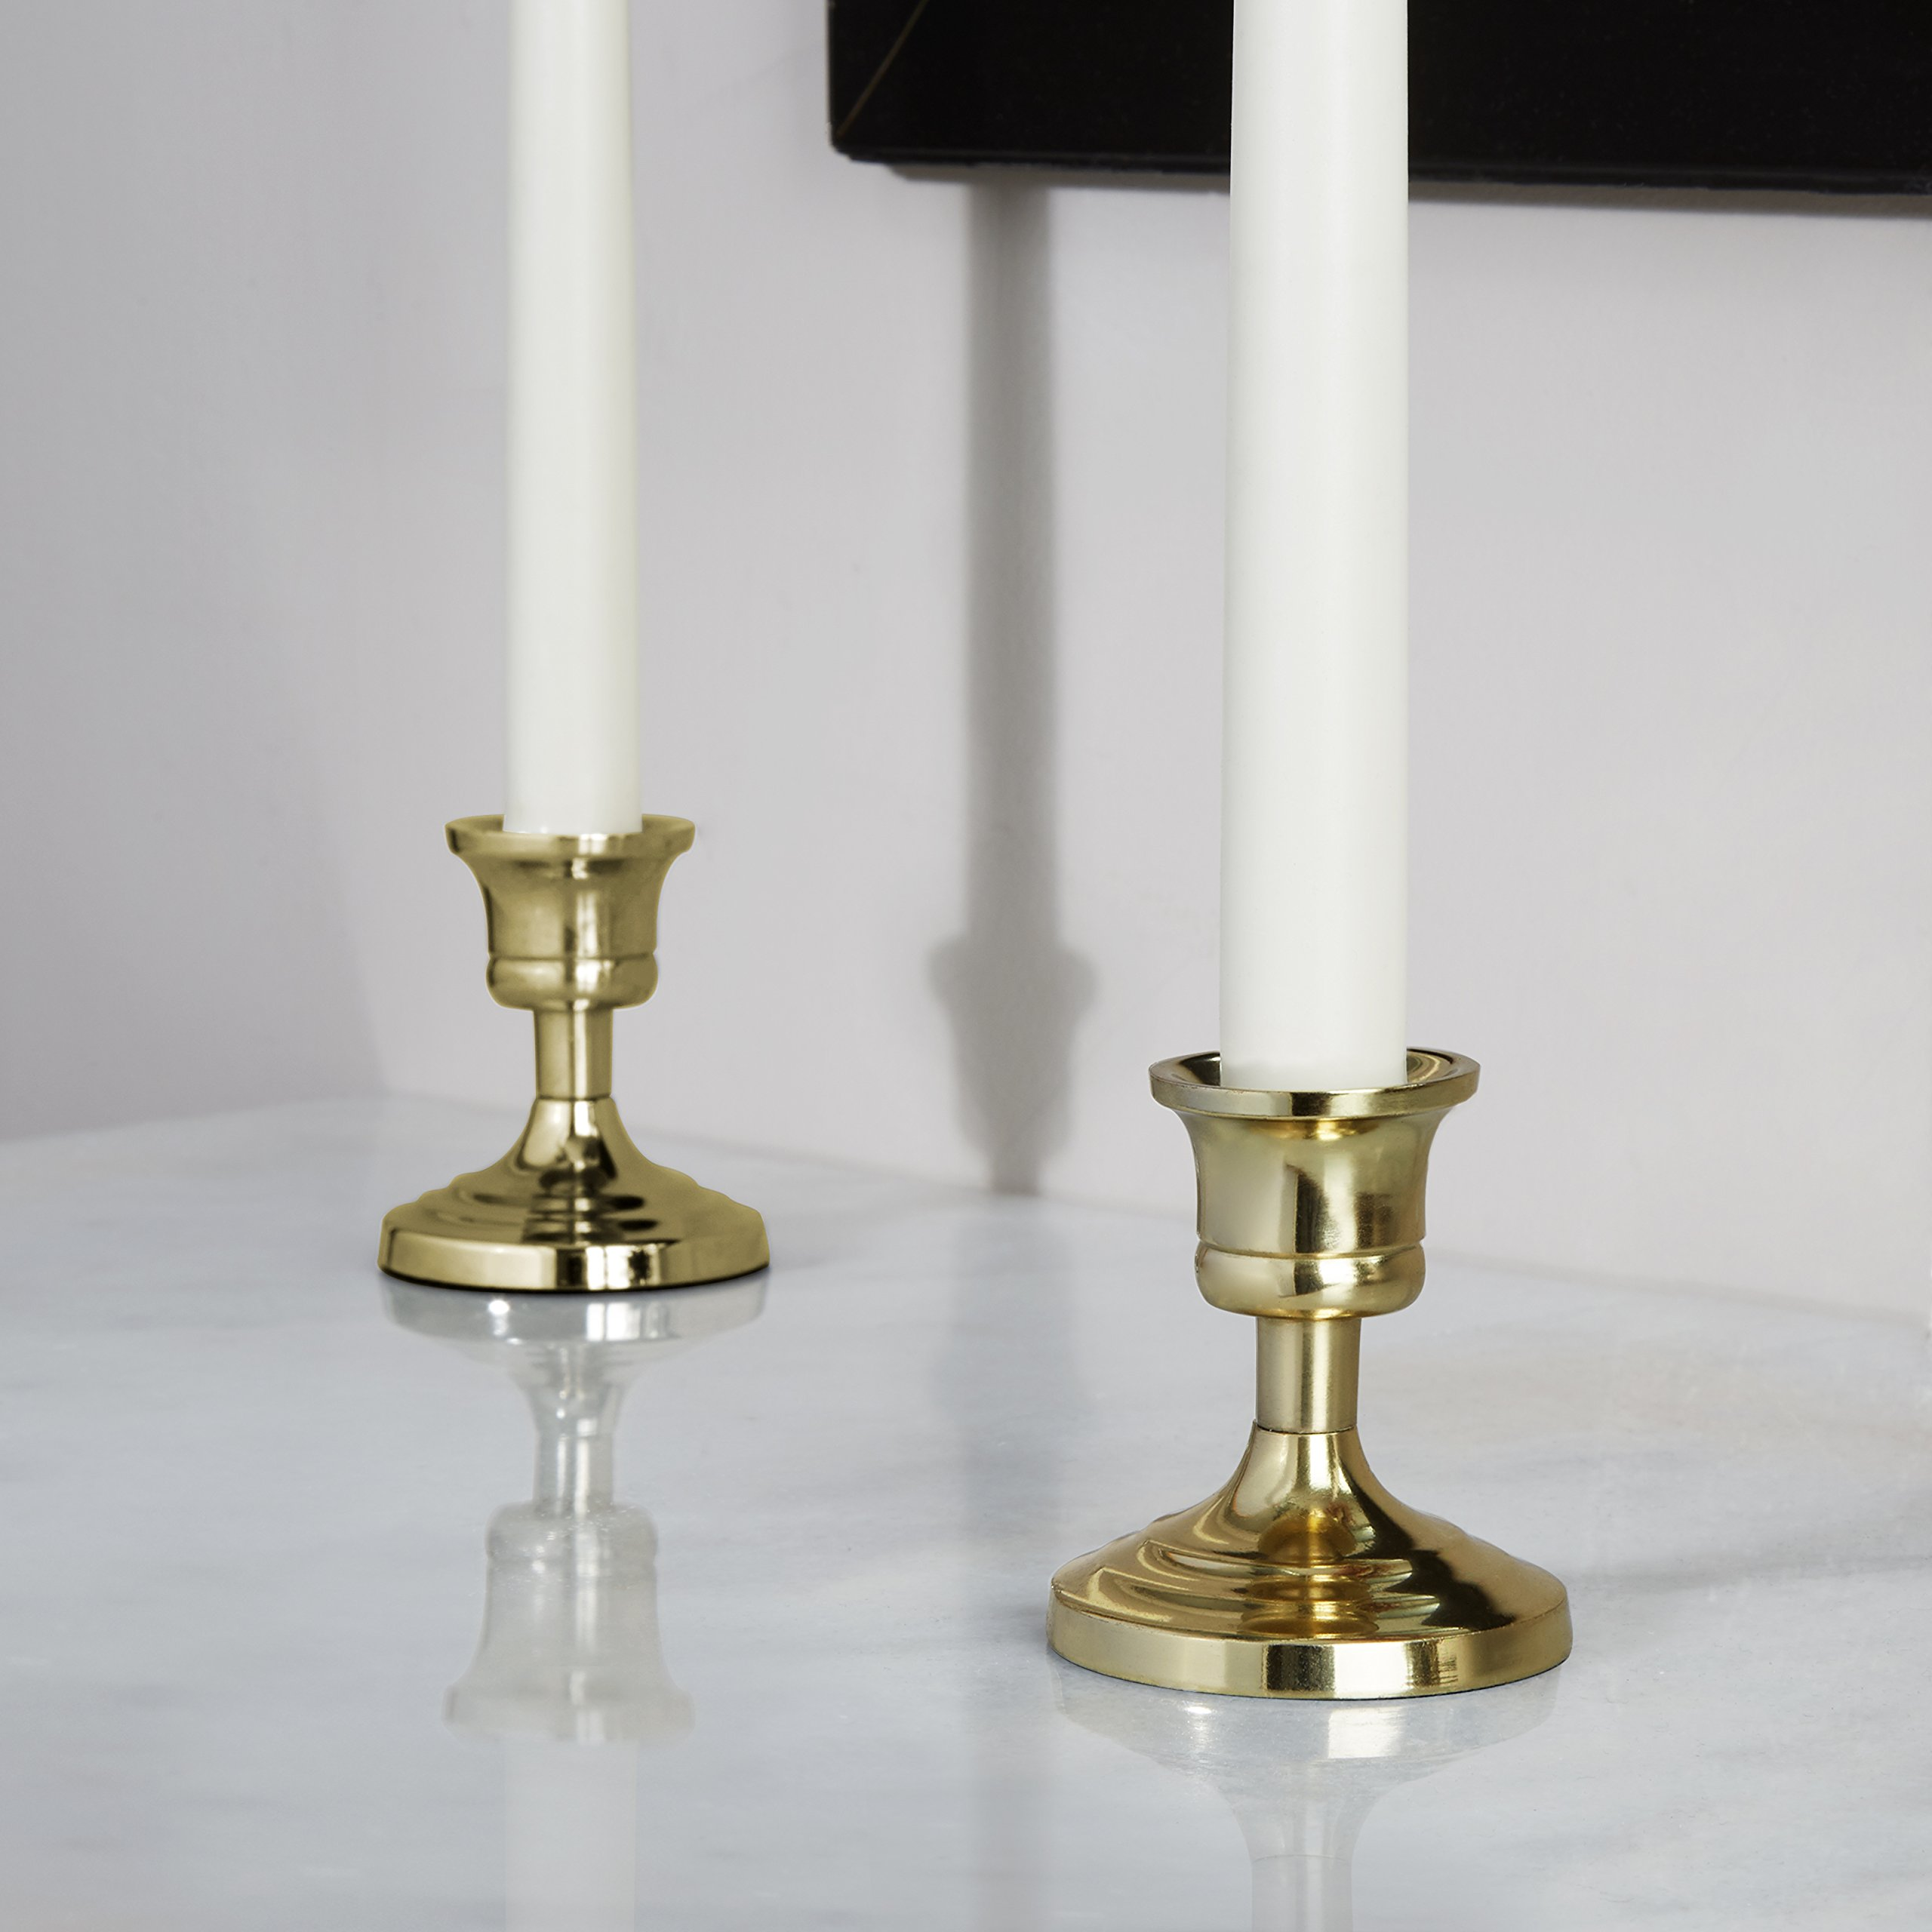 LampLust Brass Finished Taper Candle Holders, 3 Inches, Metal, Traditional Shape, Fits Standard Candlestick Diameters - Set of 2 by LampLust (Image #3)